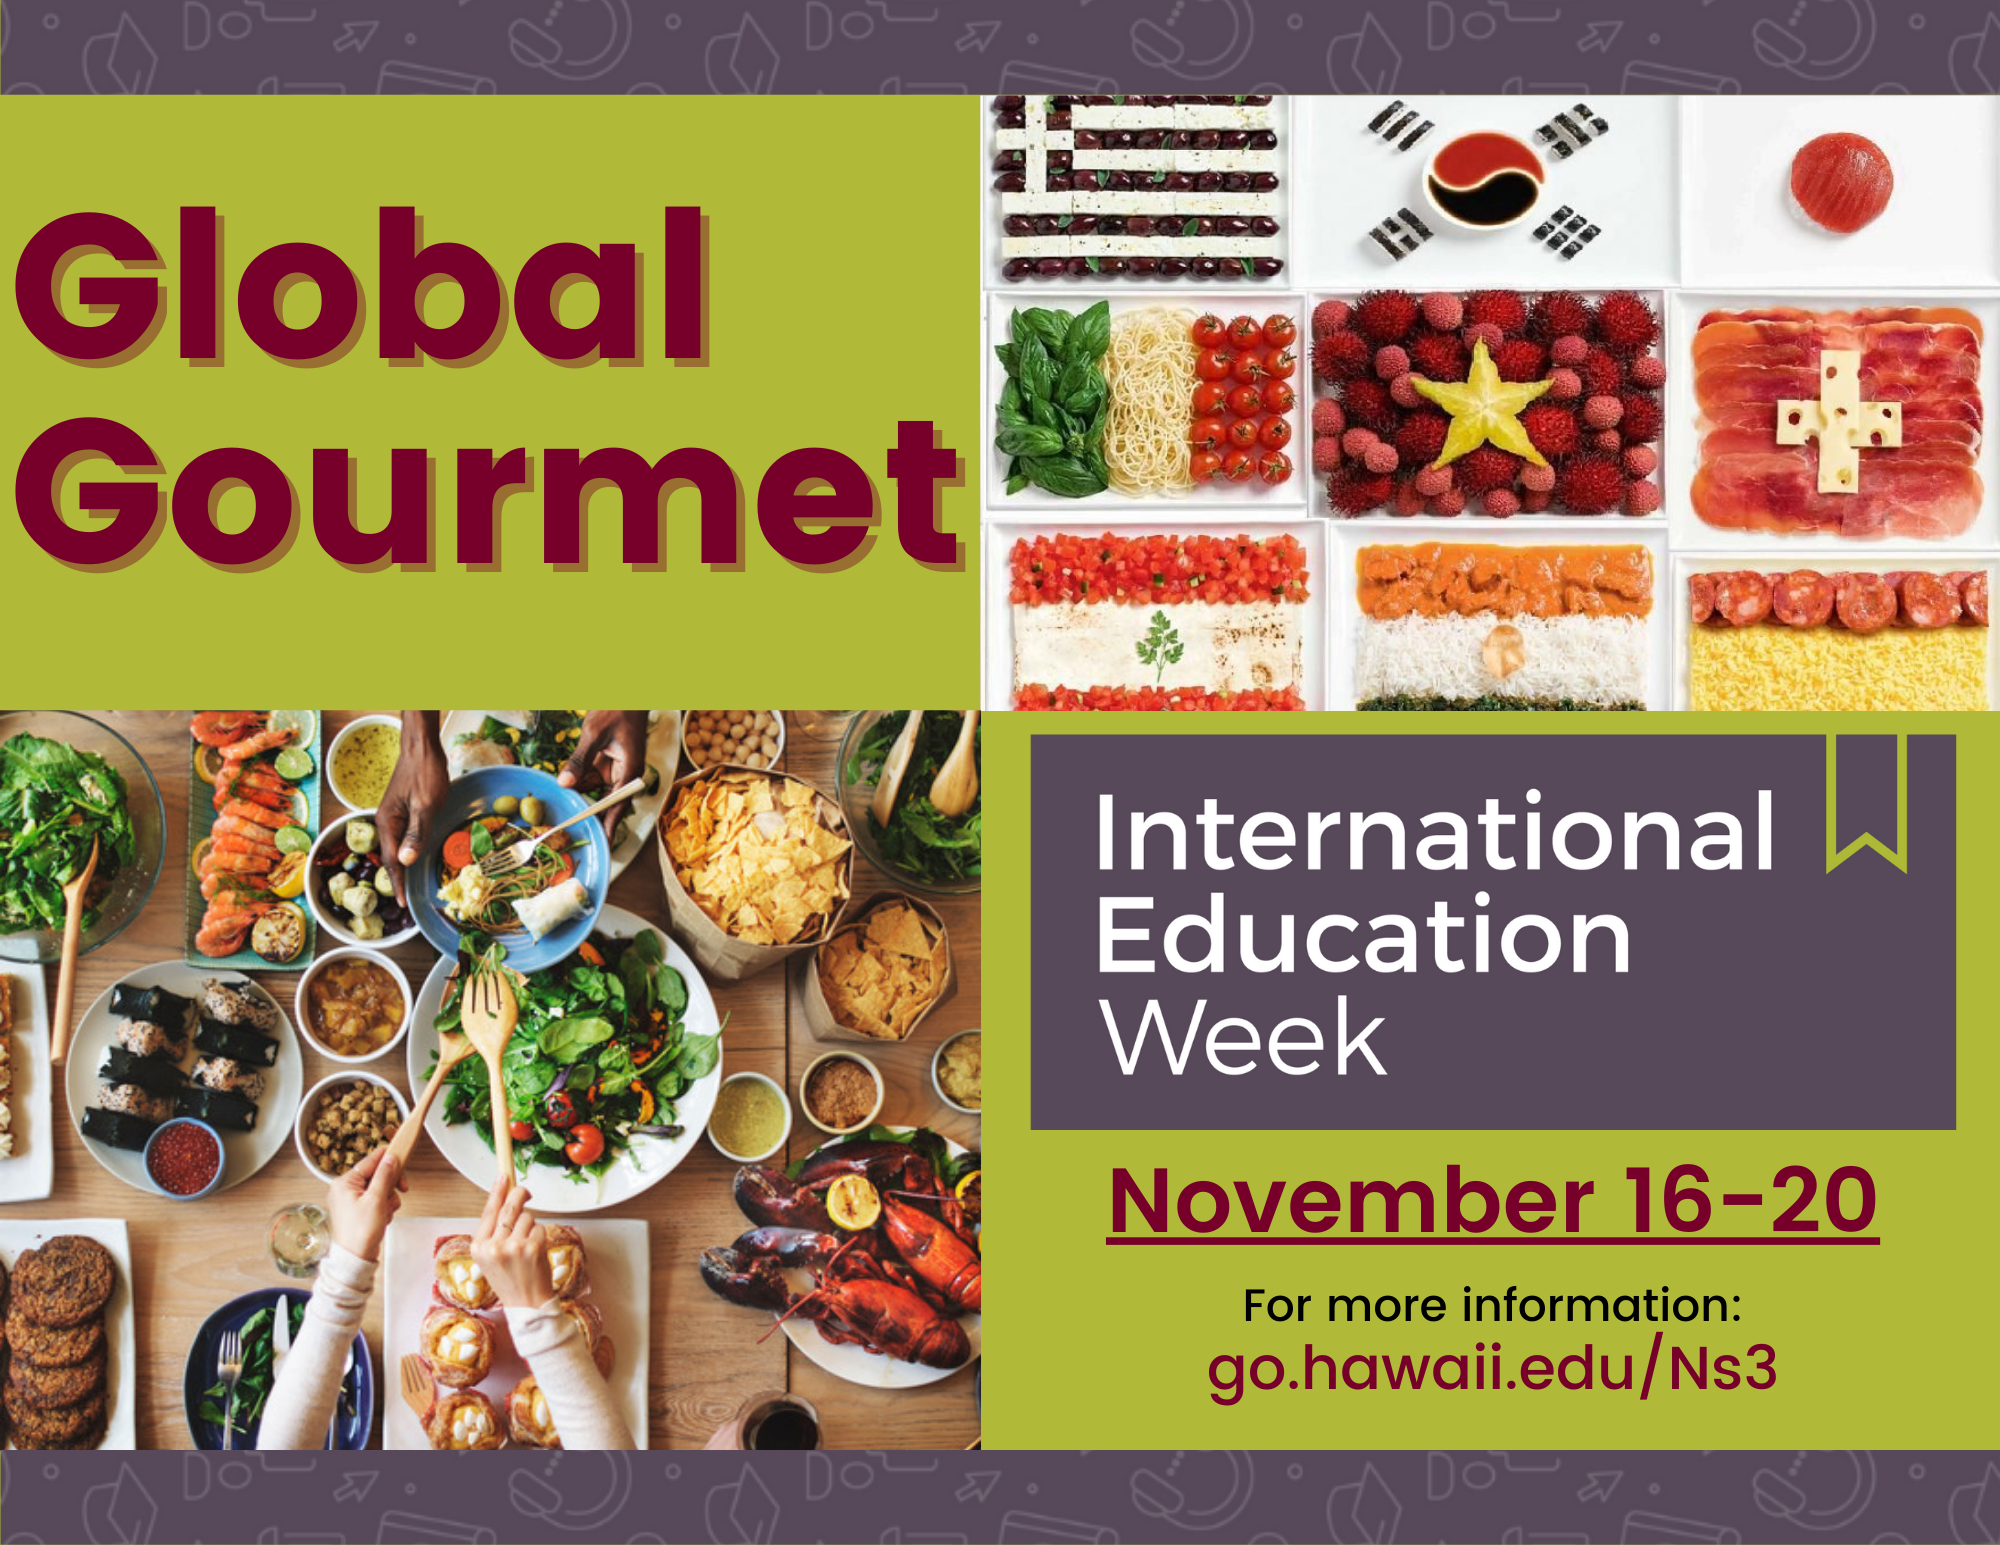 Global Gourmet Display Flyer